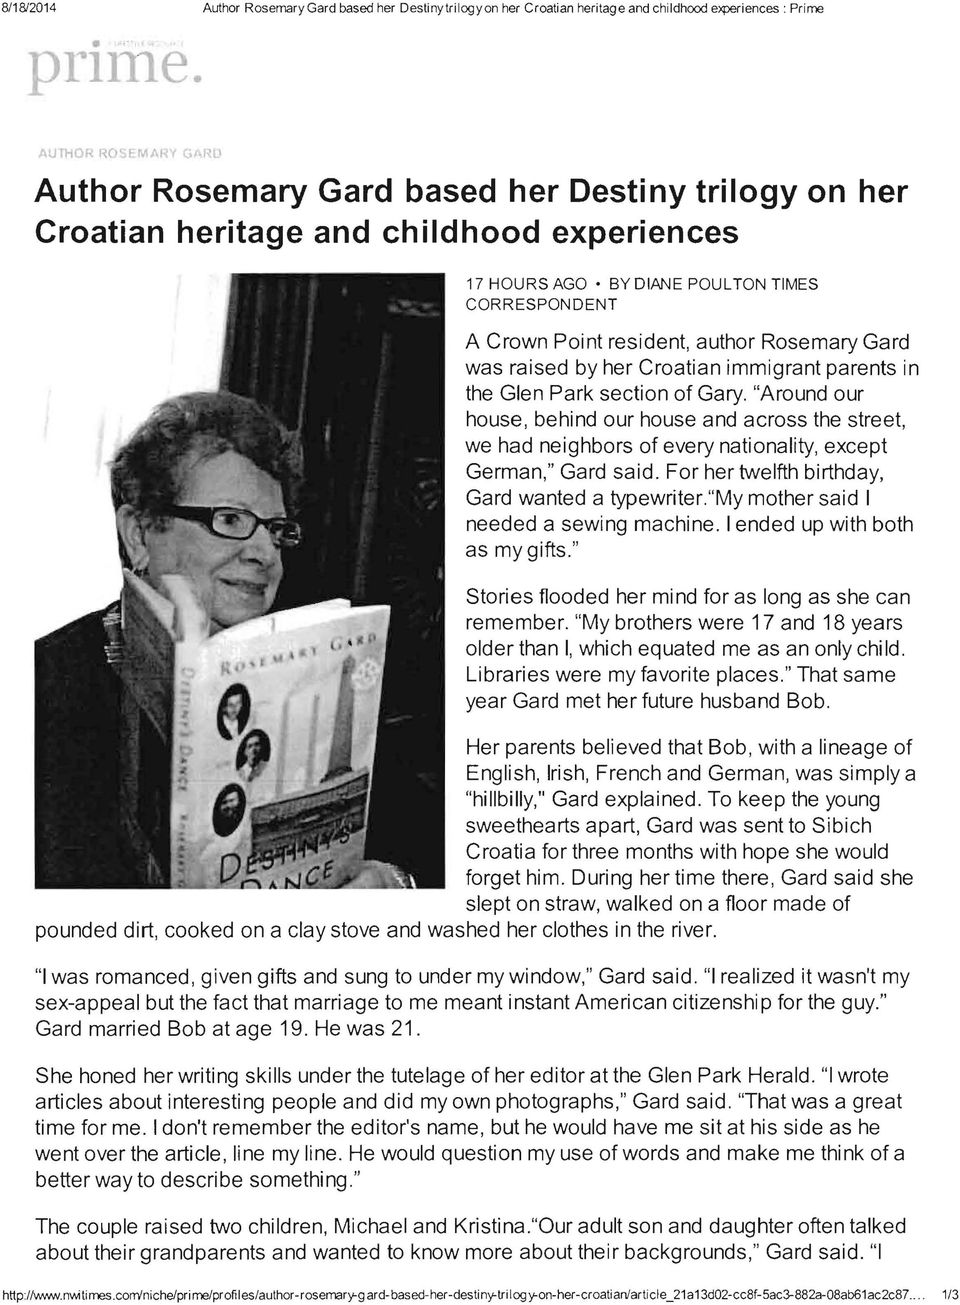 author Rosemary Gard was raised by her Croatian immigrant parents in the Glen Park section of Gary.